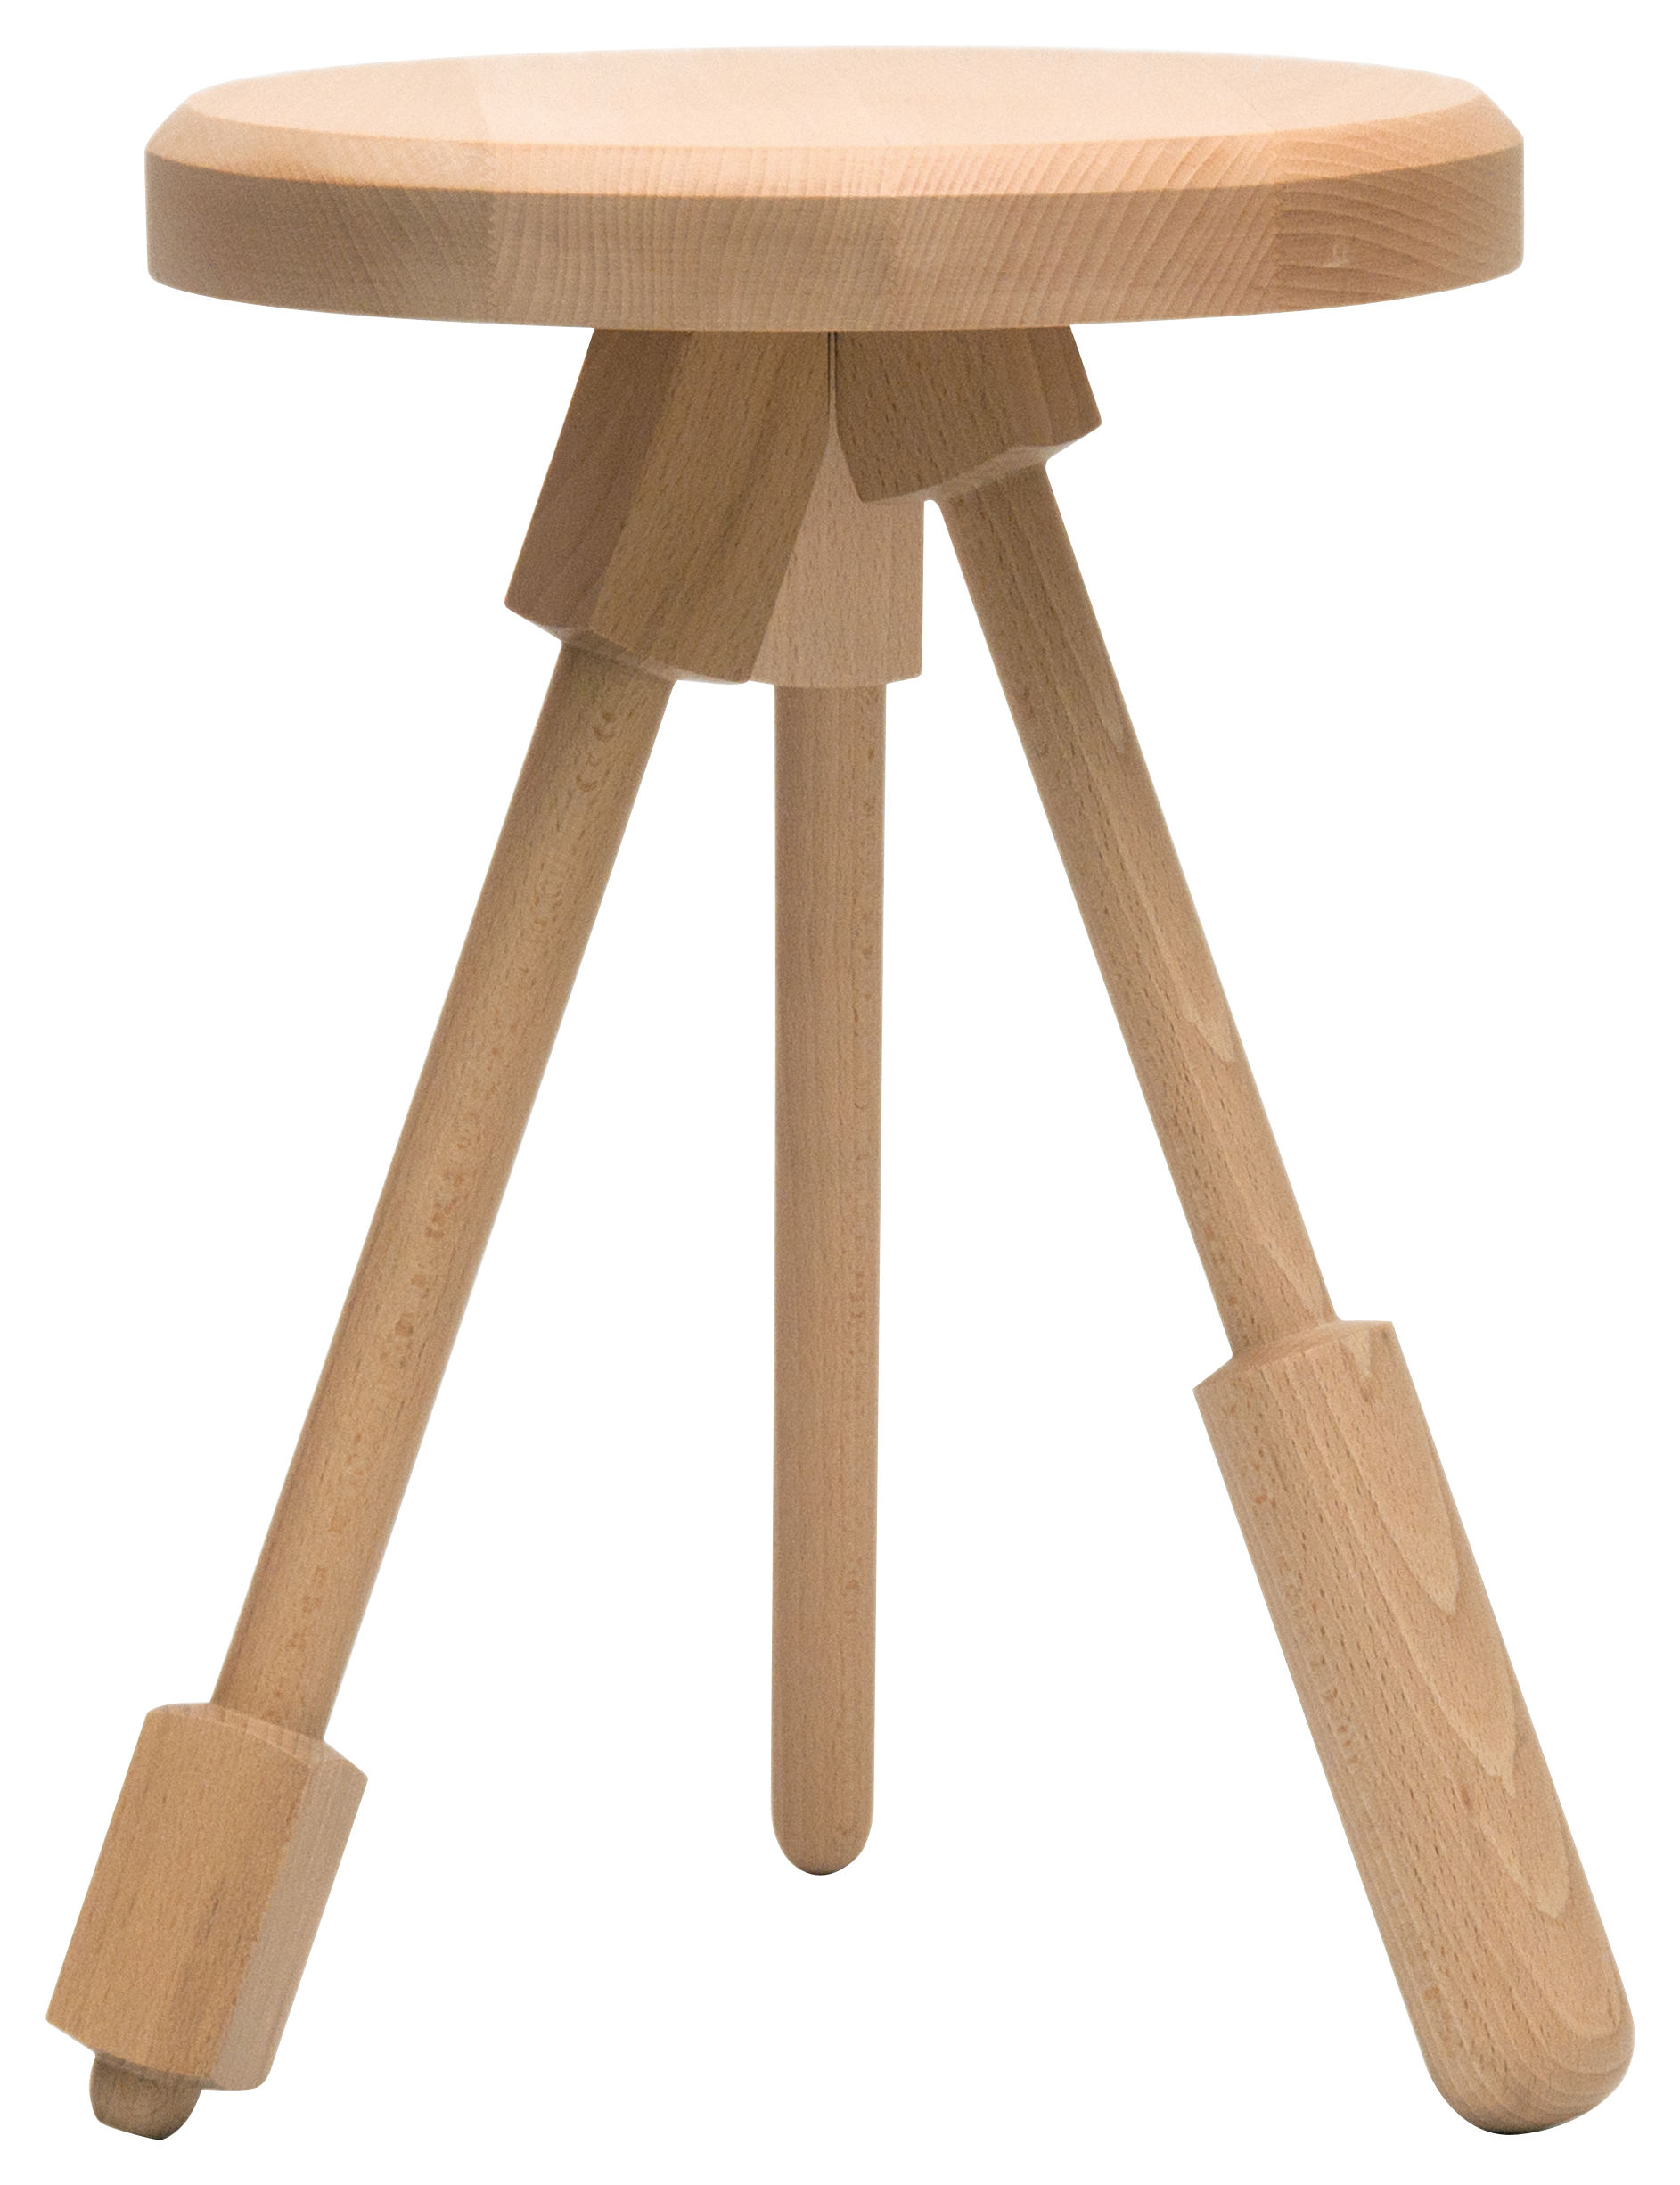 Au Bois Le Sire Orbey - Tabouret Milk Stool Version 1 Bois Bois naturel Version 1 Y'a pas le feu au lac